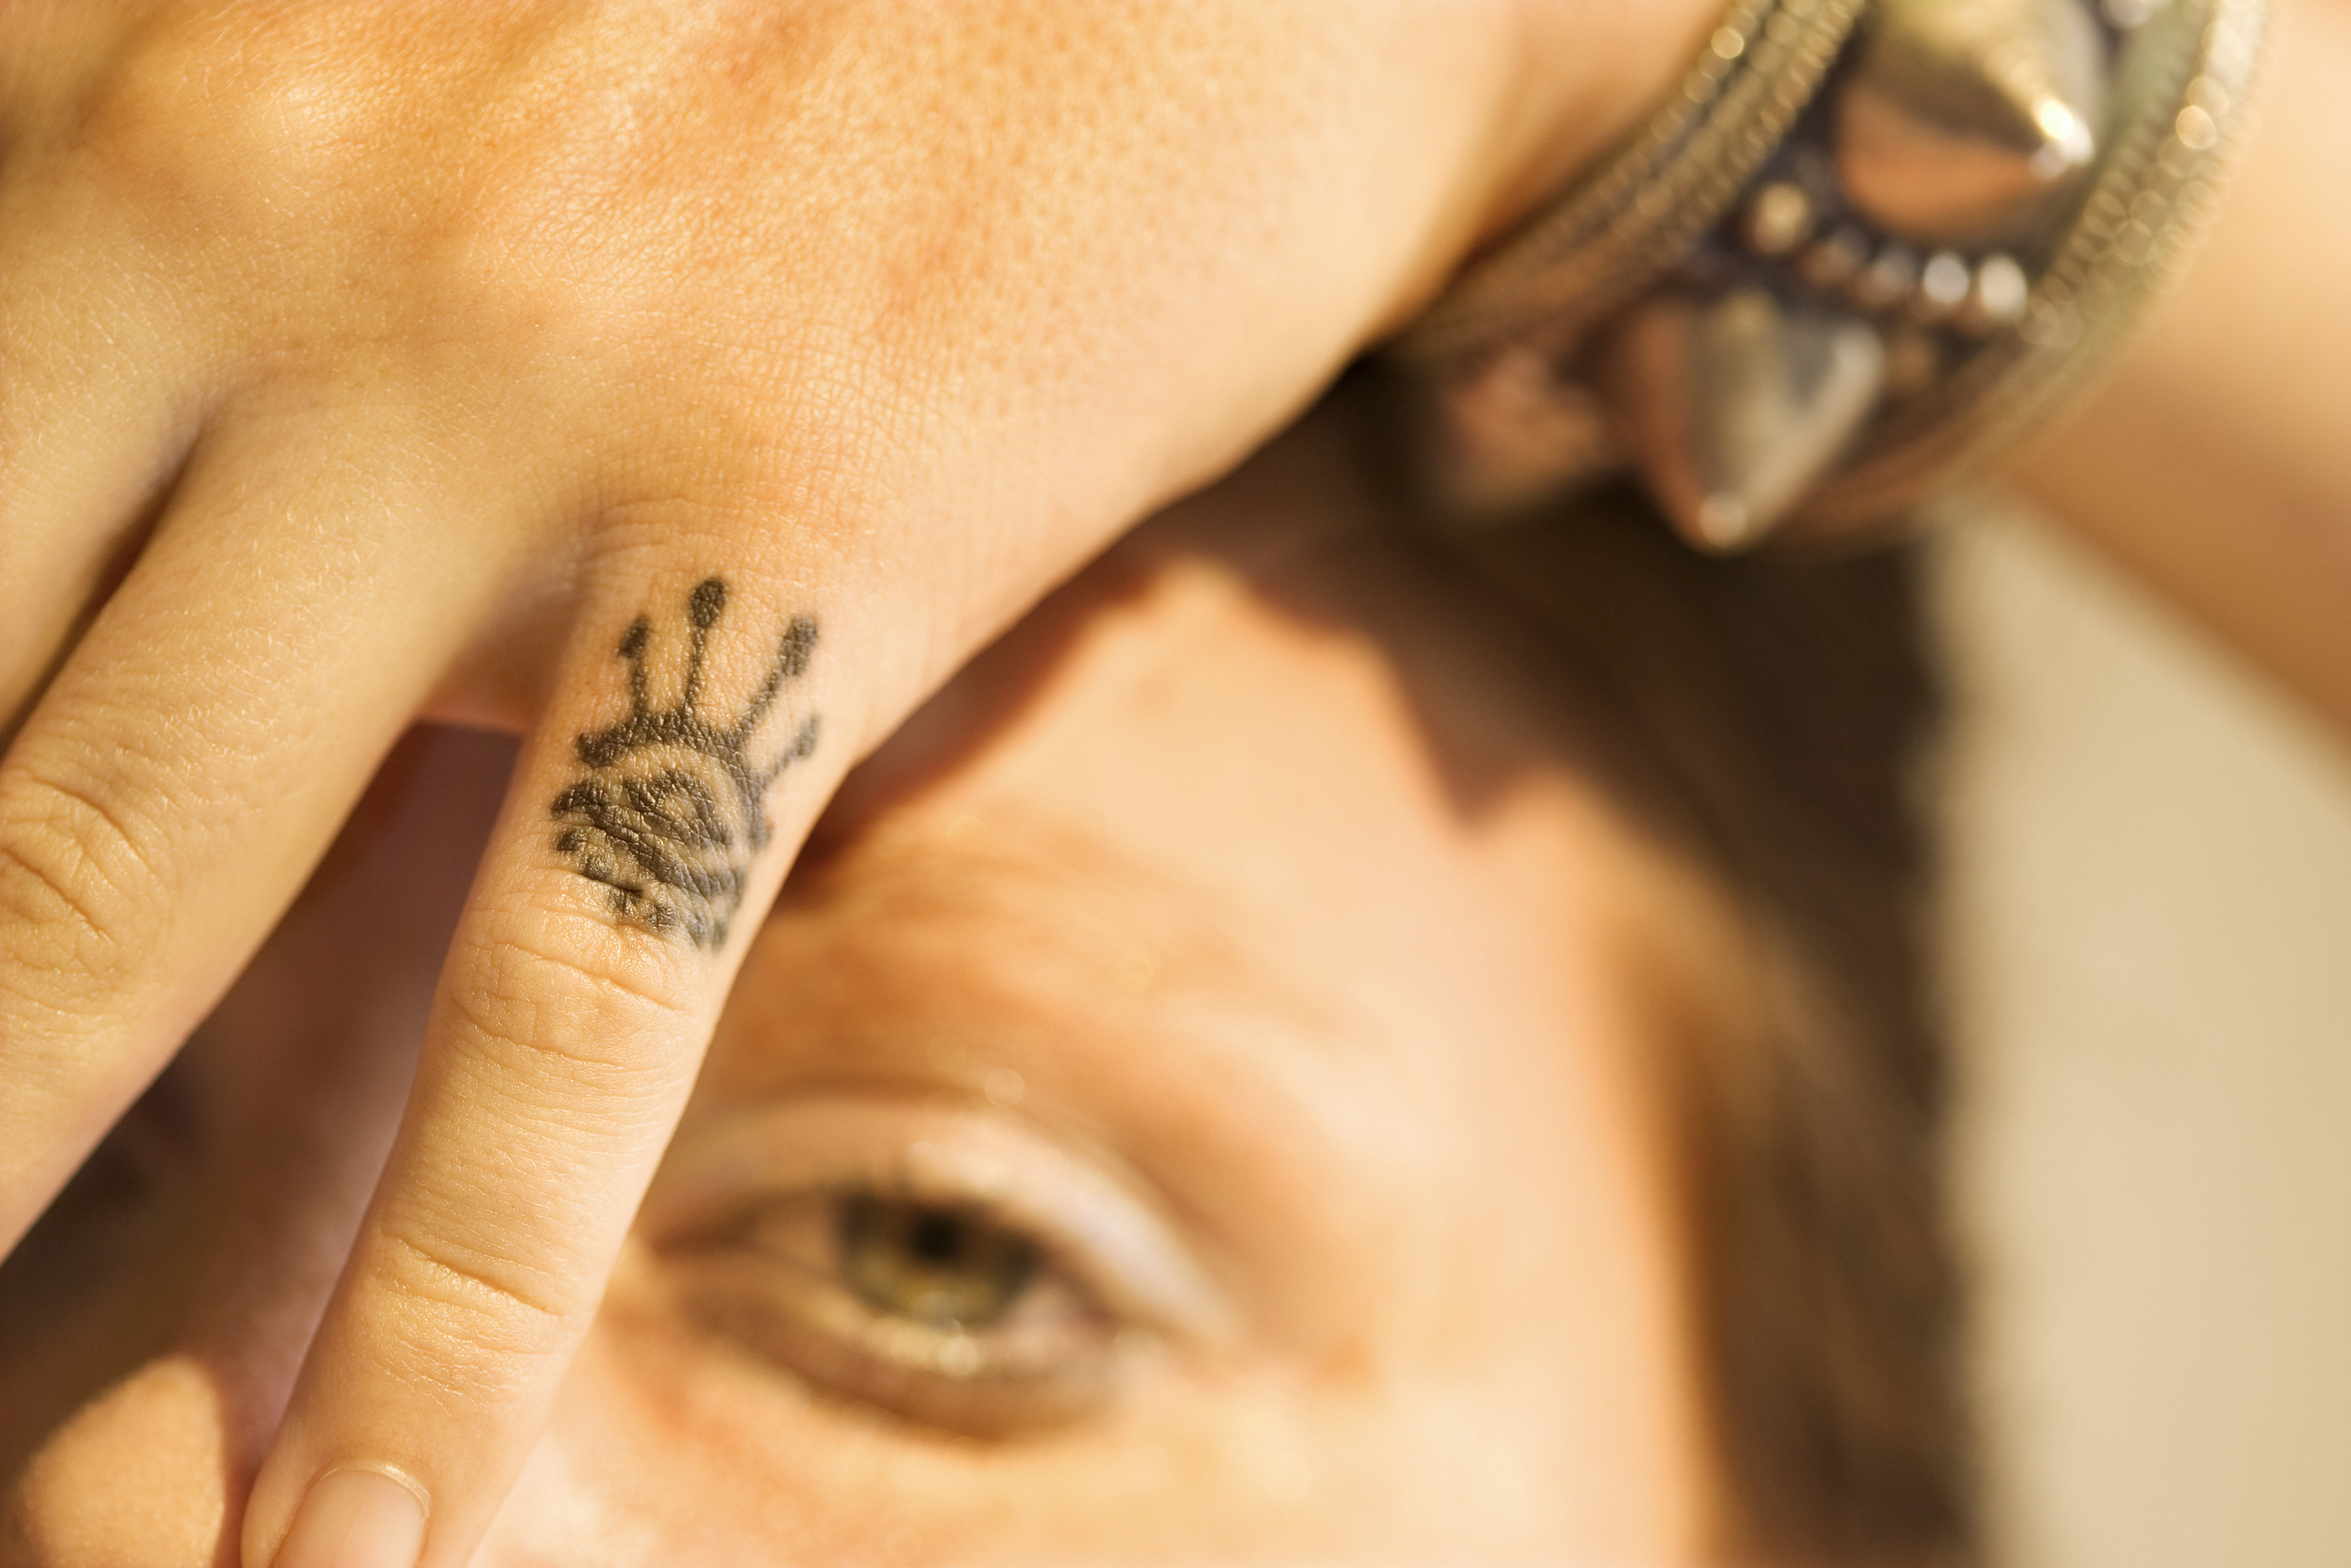 Wrecking Balm Tattoo Removal Cream Cost - All About Tattoo